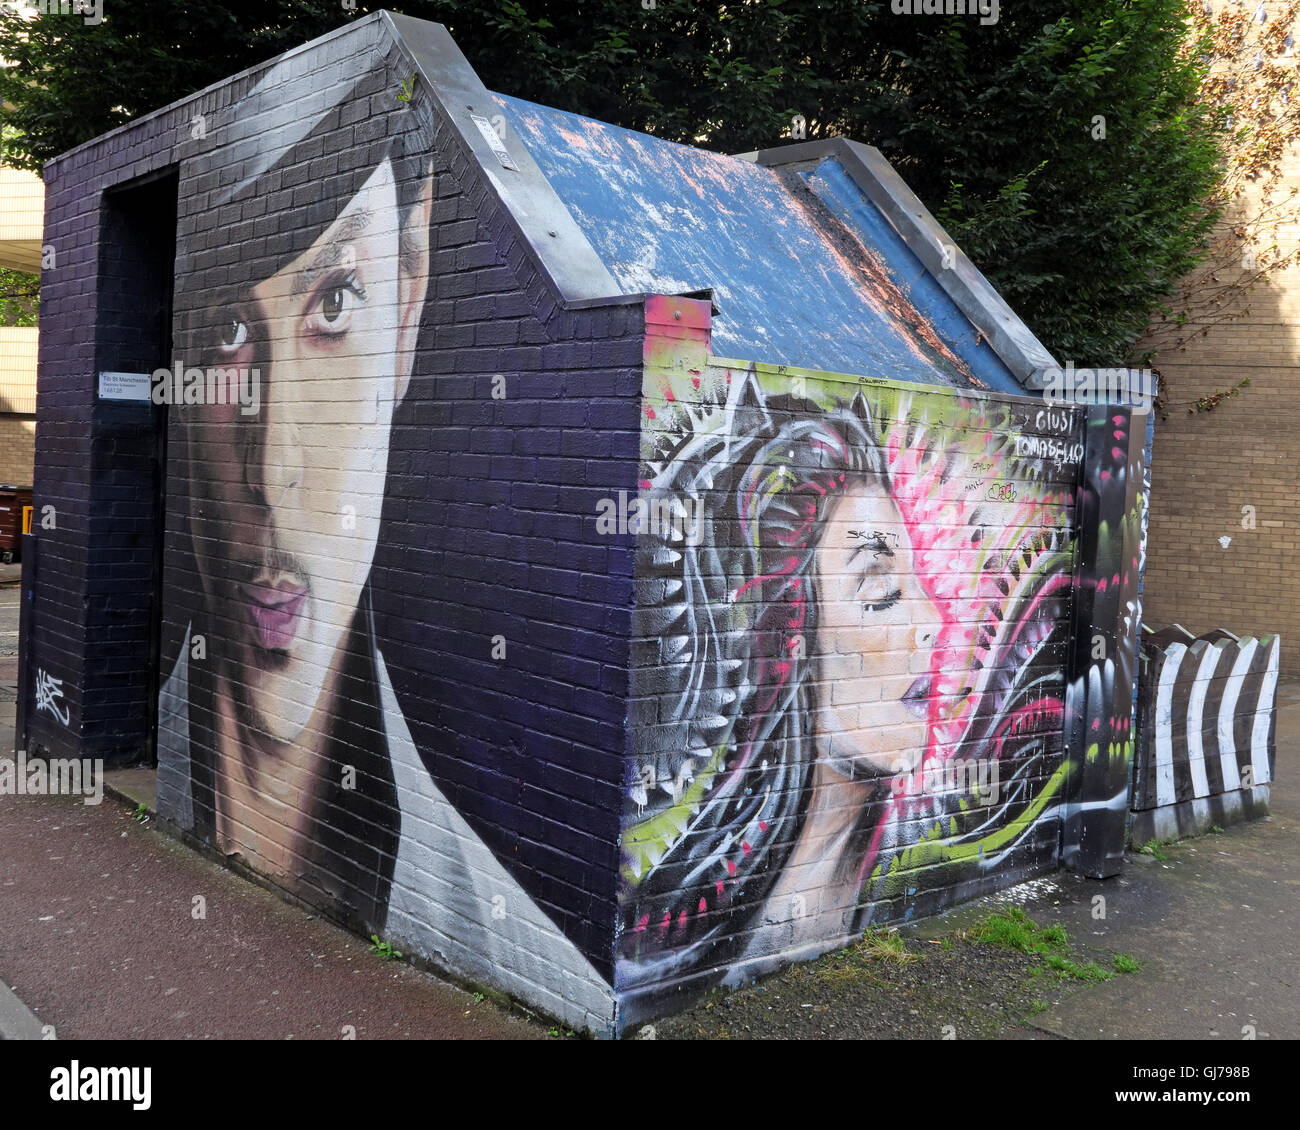 Northern Quarter Artwork, NQ, Manchester, North West England, UK, M1 1JR - Stock Image